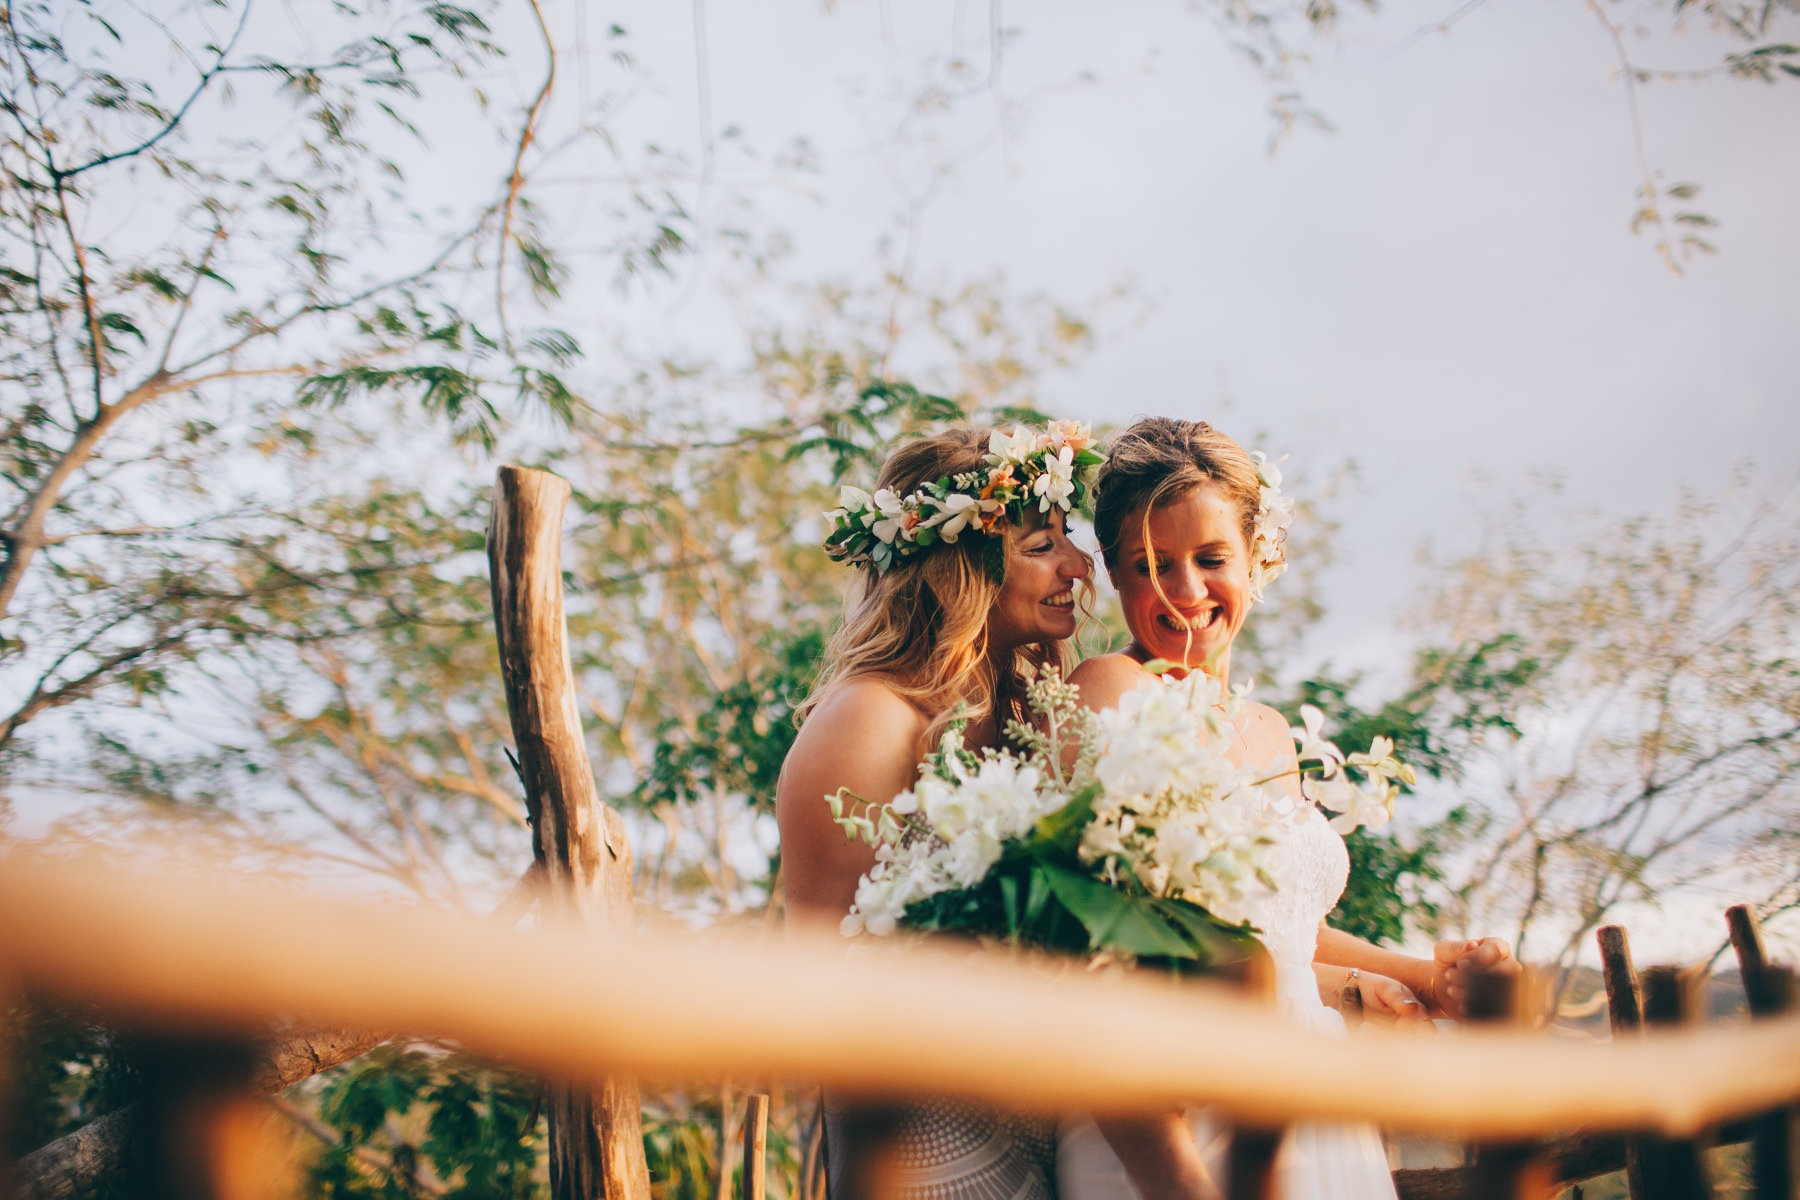 Beautiful brides photography - same-sex destination wedding Costa Rica